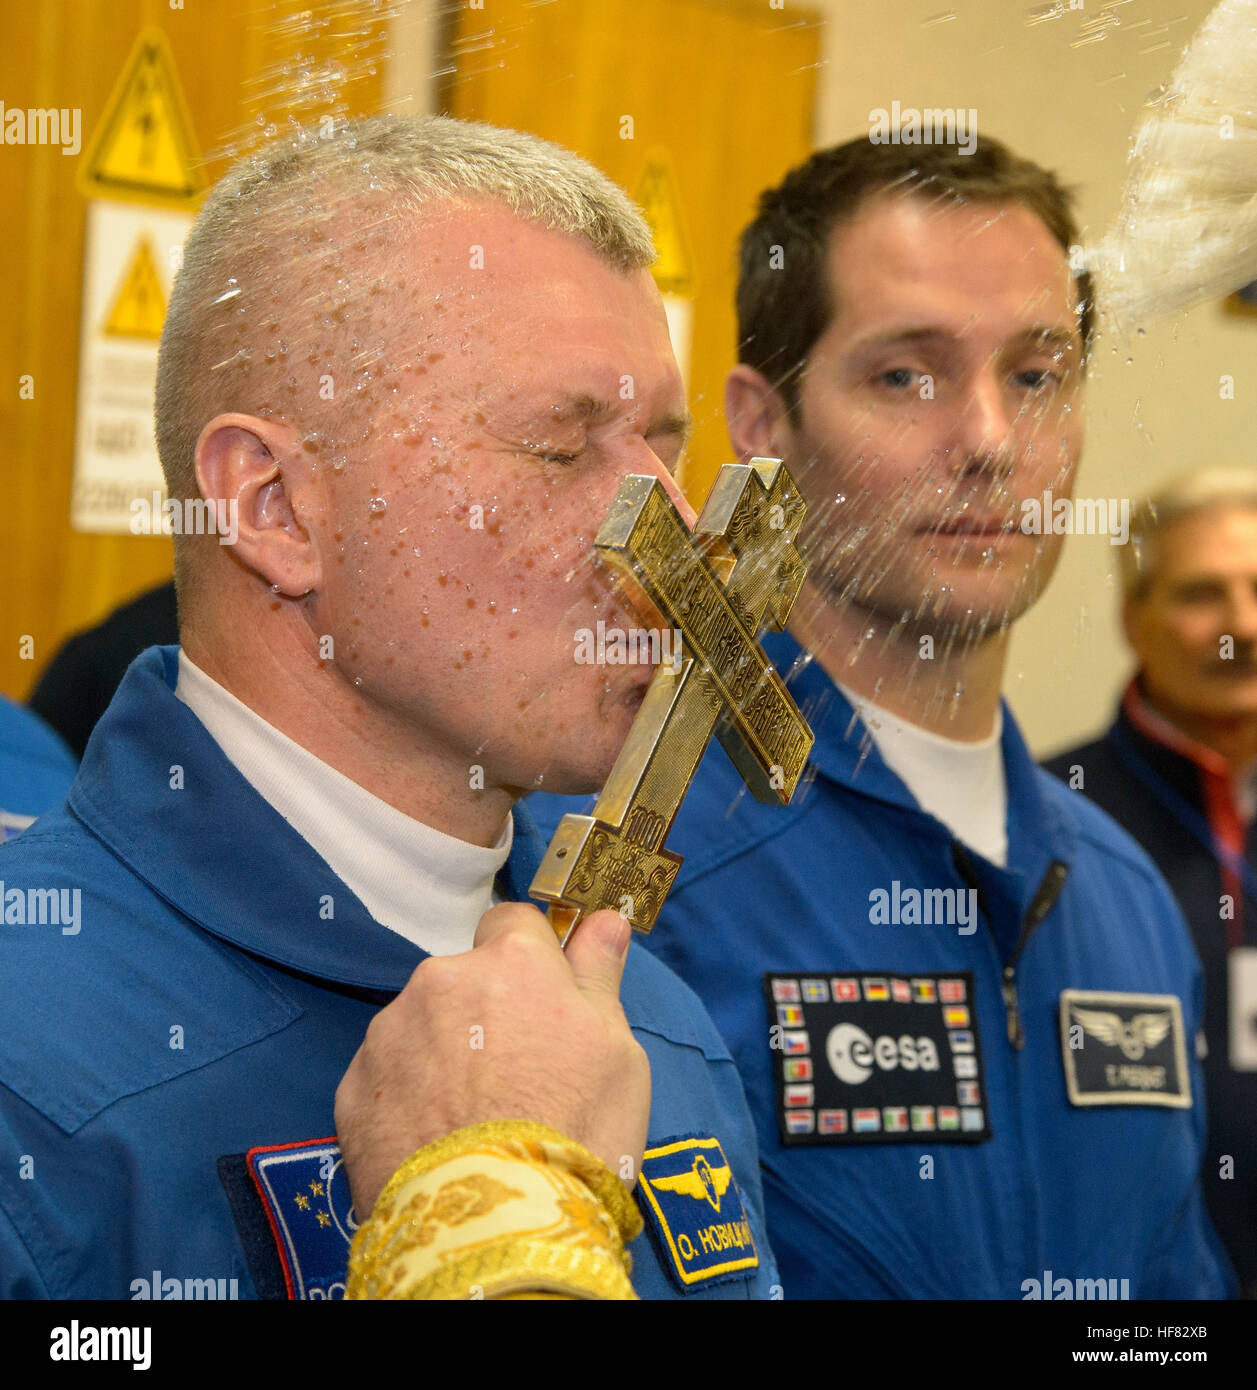 Expedition 50 Russian cosmonaut Oleg Novitskiy of Roscosmos receives a traditional blessing from a Russian Orthodox - Stock Image